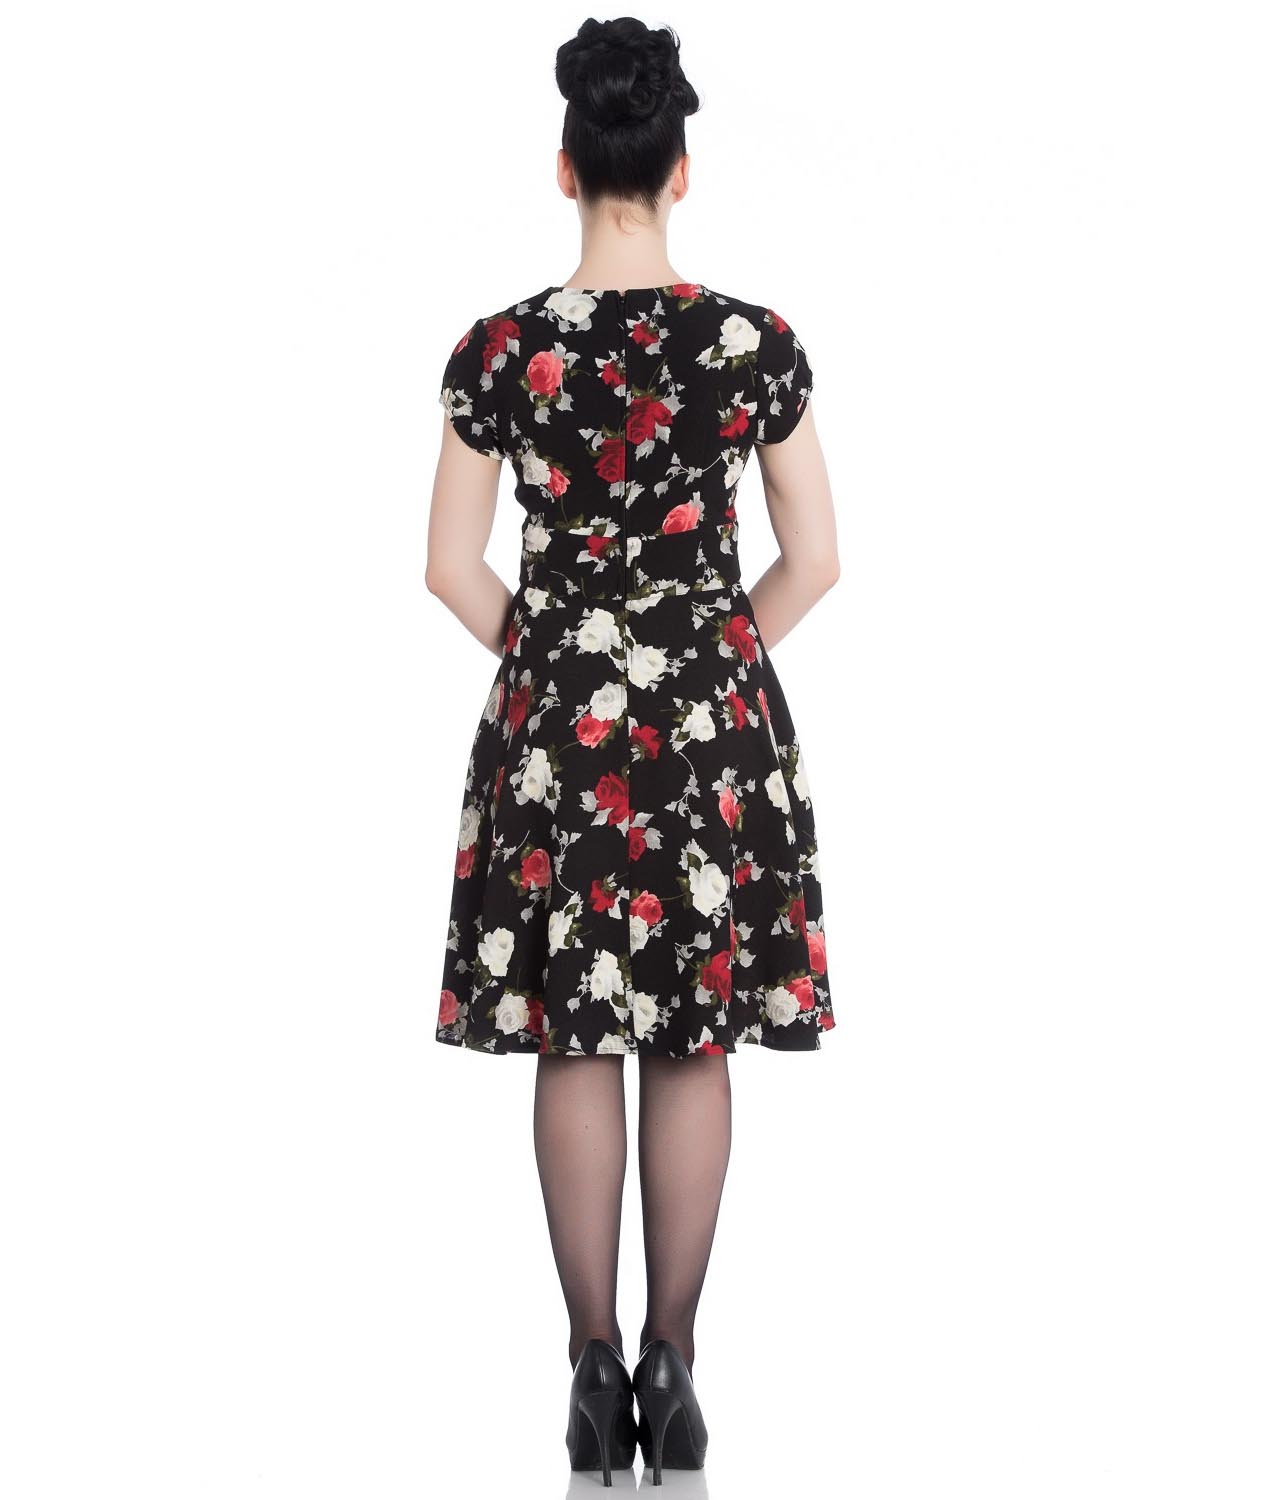 Hell-Bunny-40s-50s-Elegant-Pin-Up-Dress-VALENTINA-Black-Roses thumbnail 13